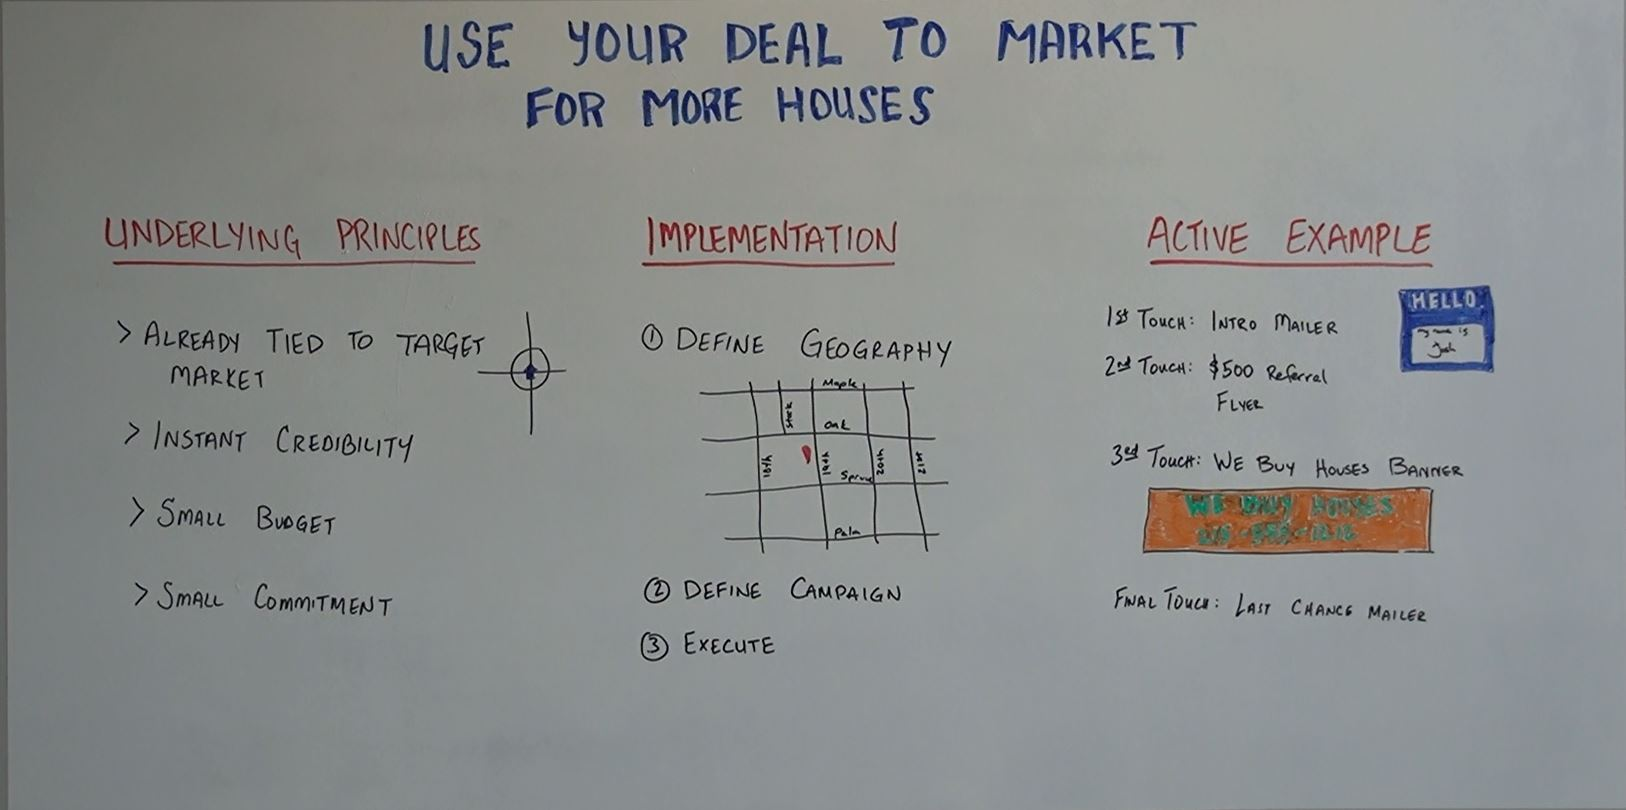 Use Your Deal to Market for More Houses